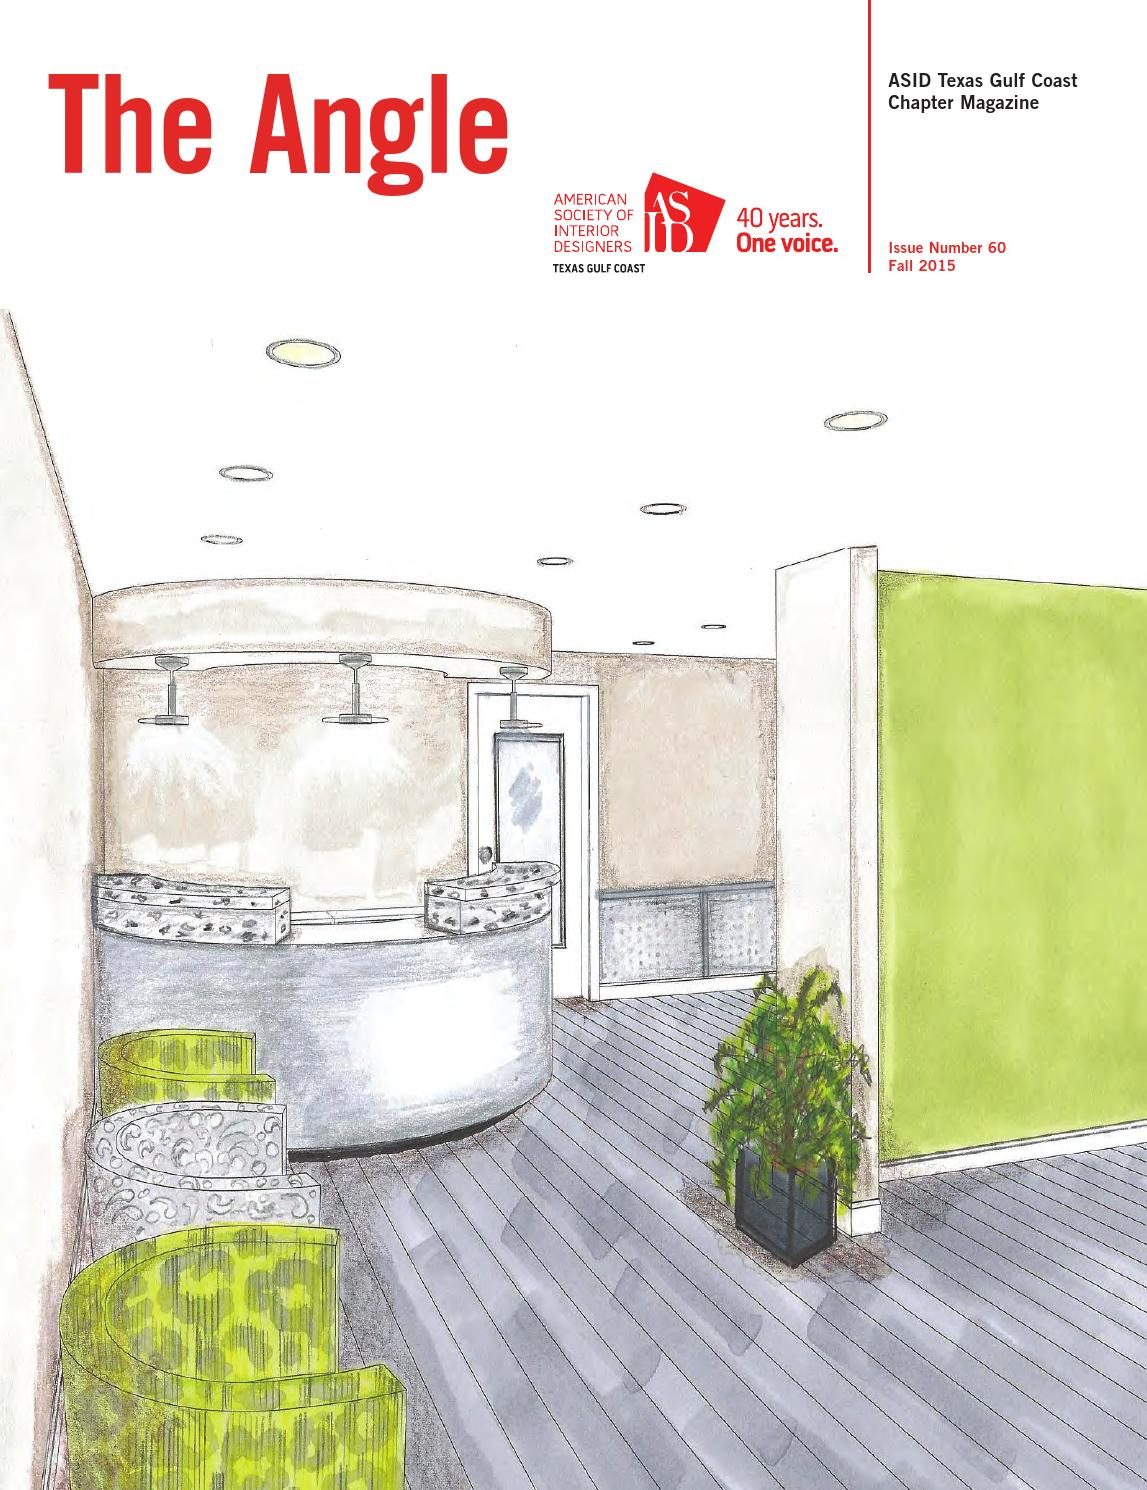 Asid texas gulf coast chapter fall 2015 by dsa publishing for Asid gulf coast chapter